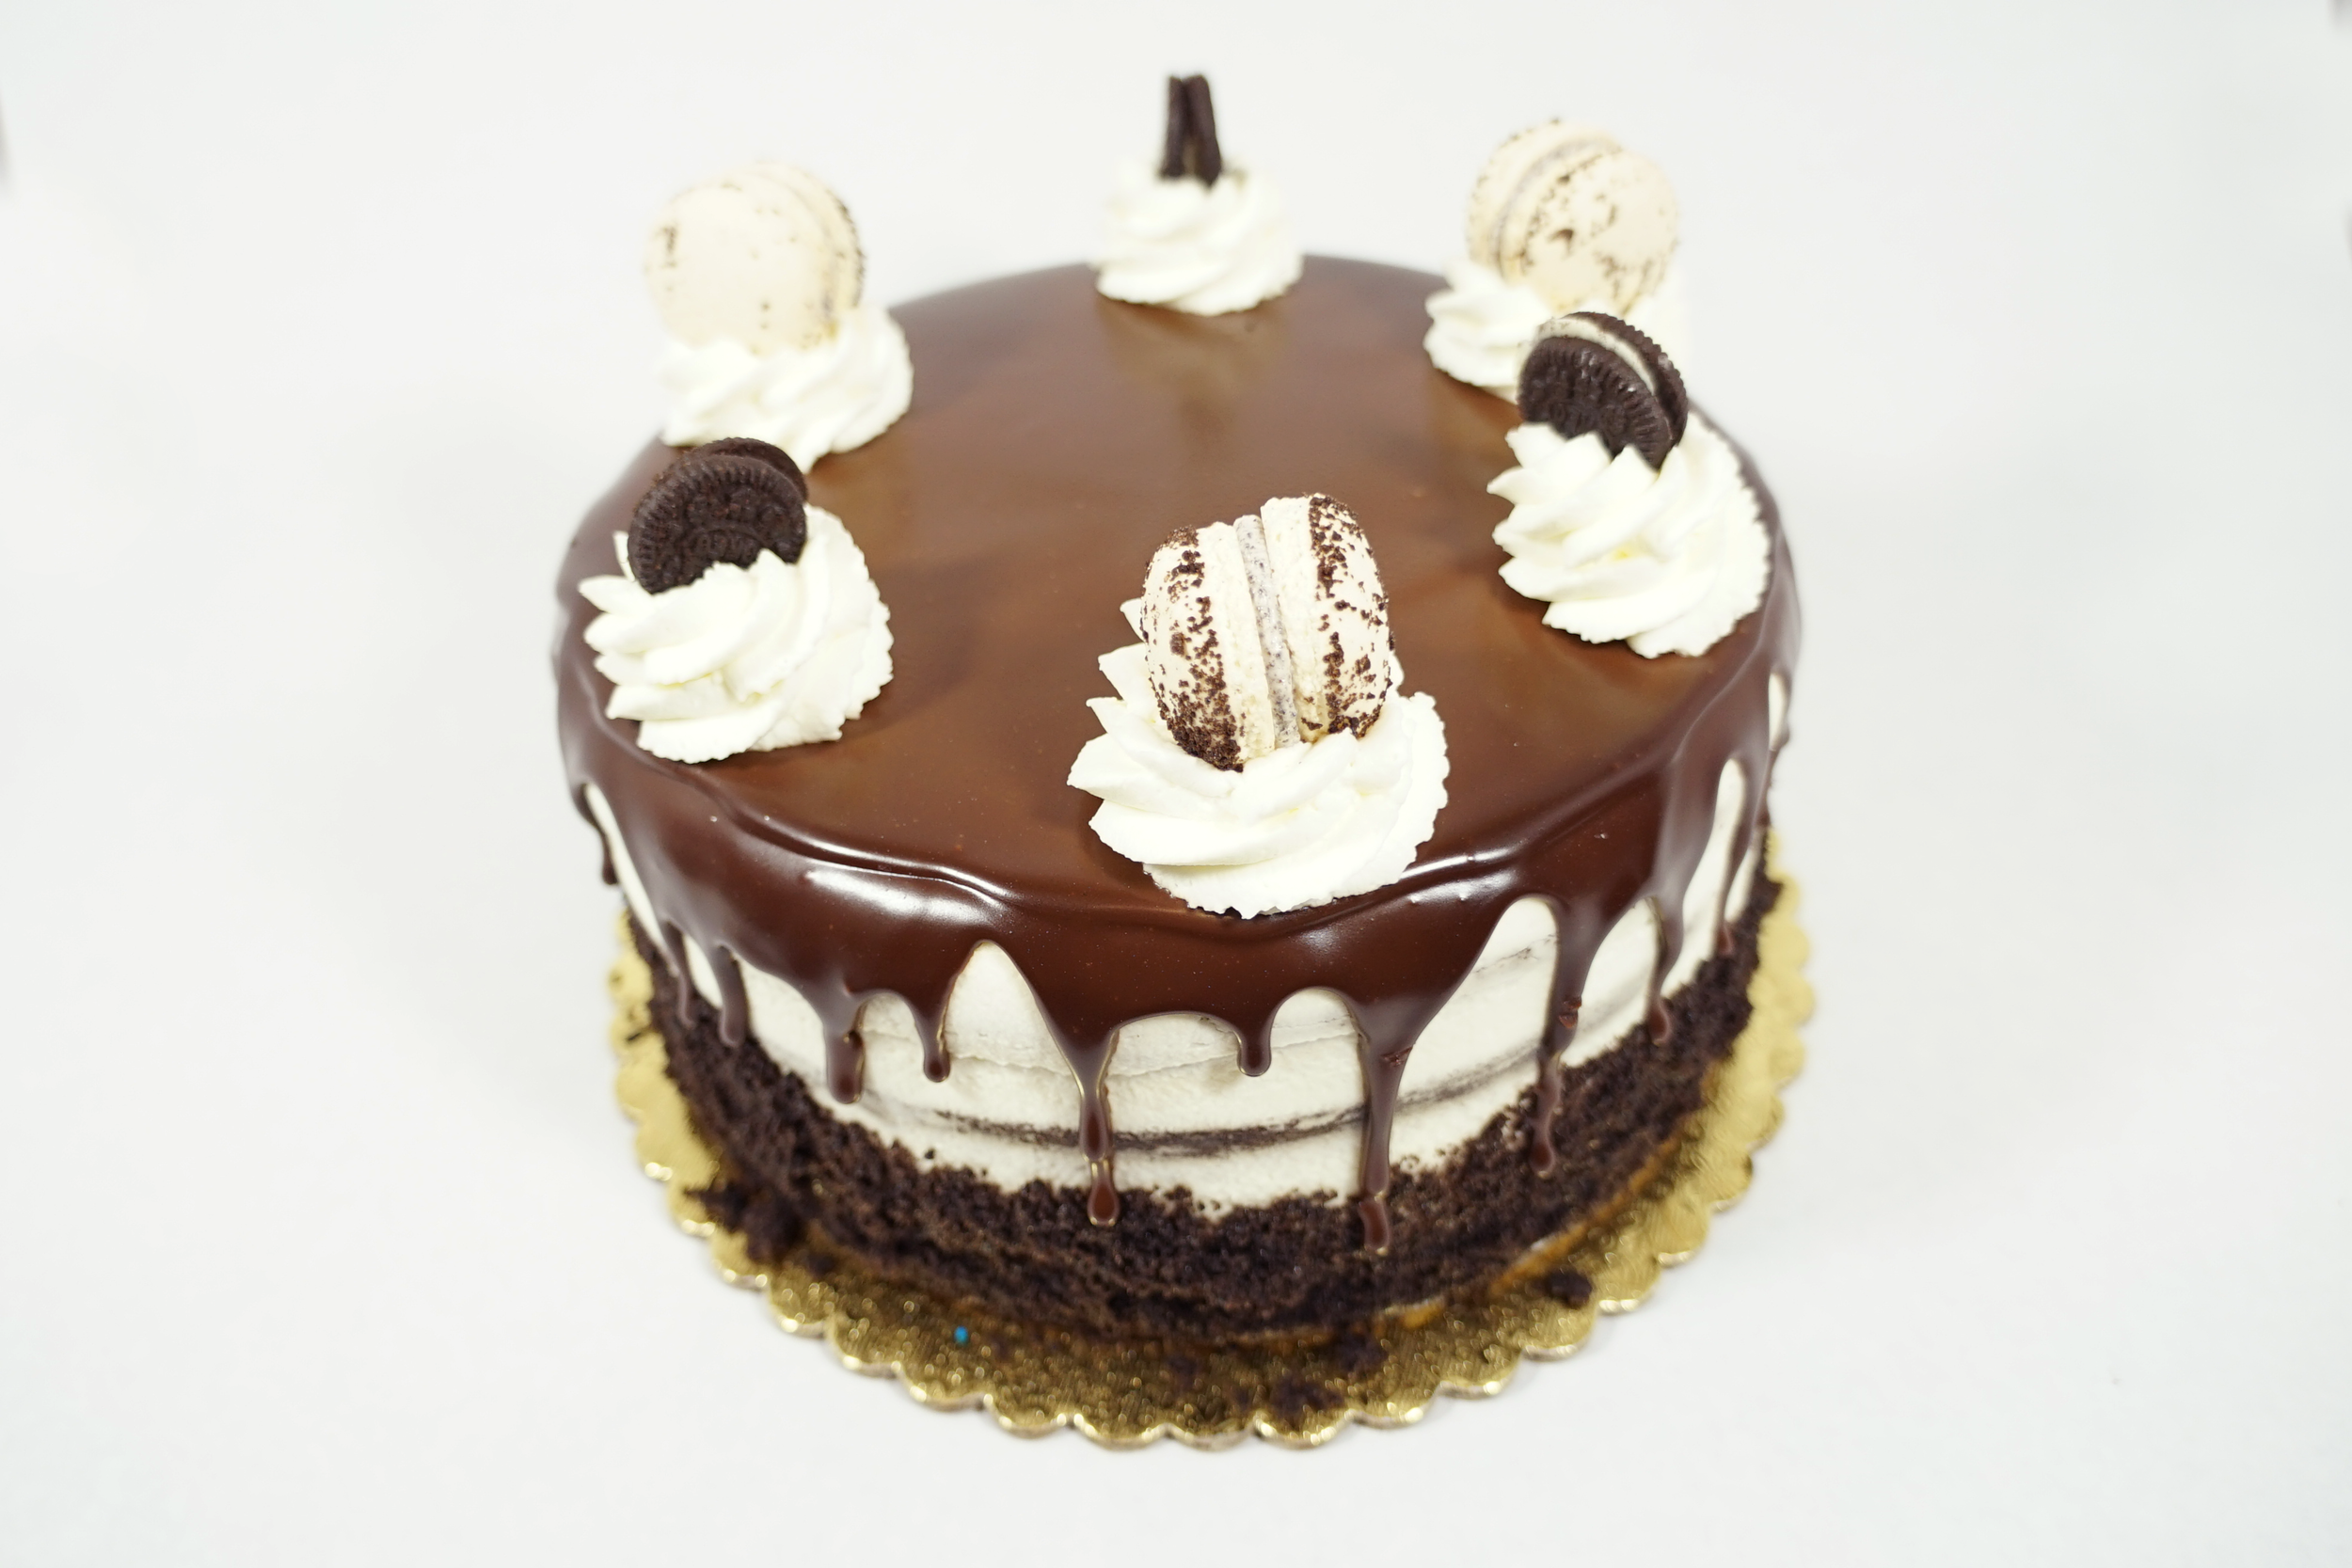 Cookies and Cream - Chocolate cake with rum syrup and 2 layers of Oreo cream filling. Iced with whipped cream. Poured on top a layer of melted chocolate glaze drip. Decorated with crumbled chocolate cookie, dallops of whipped cream and mini Oreos.